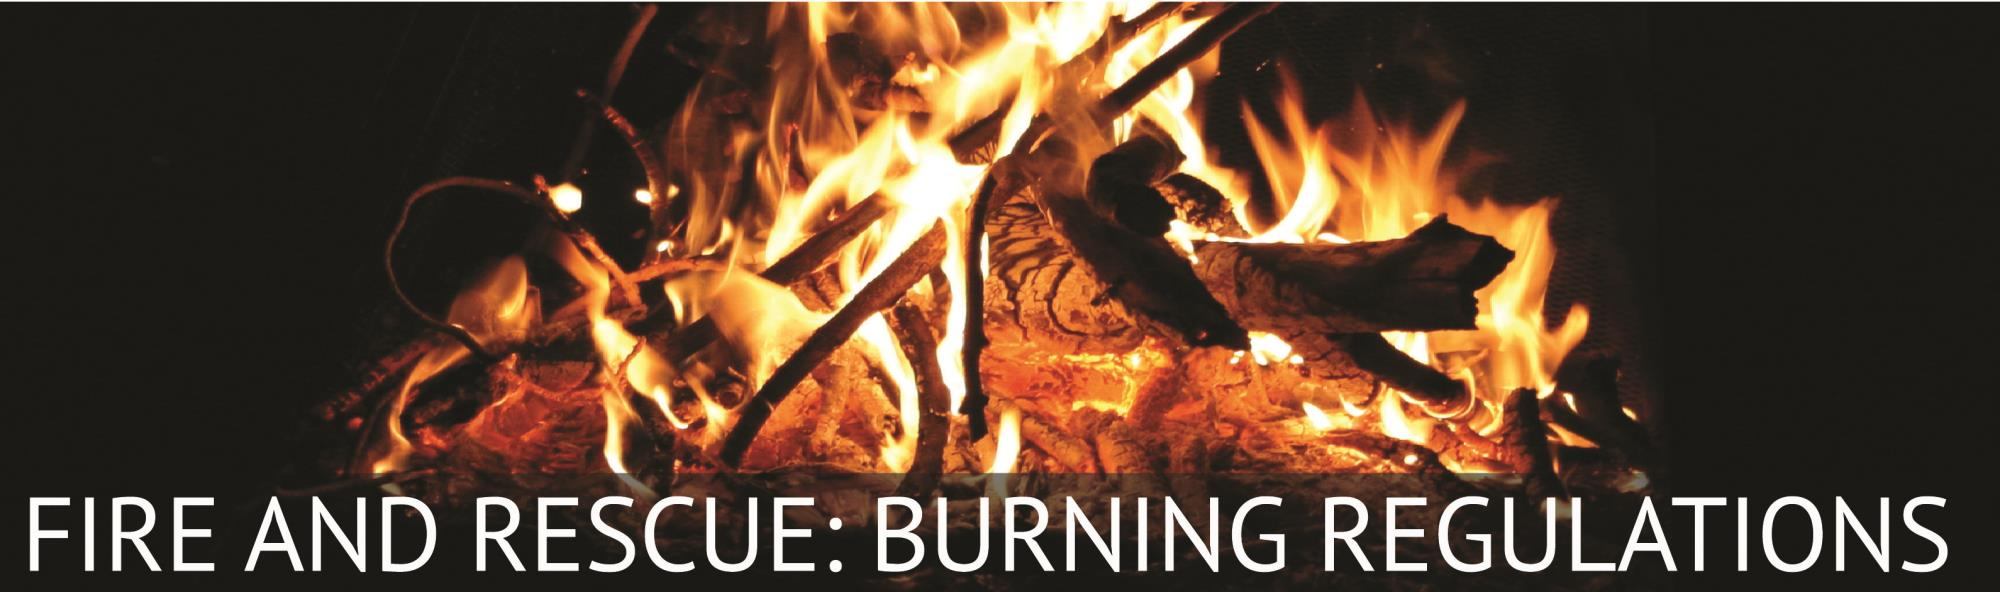 fire_and_rescue_burning_regs_banner-01